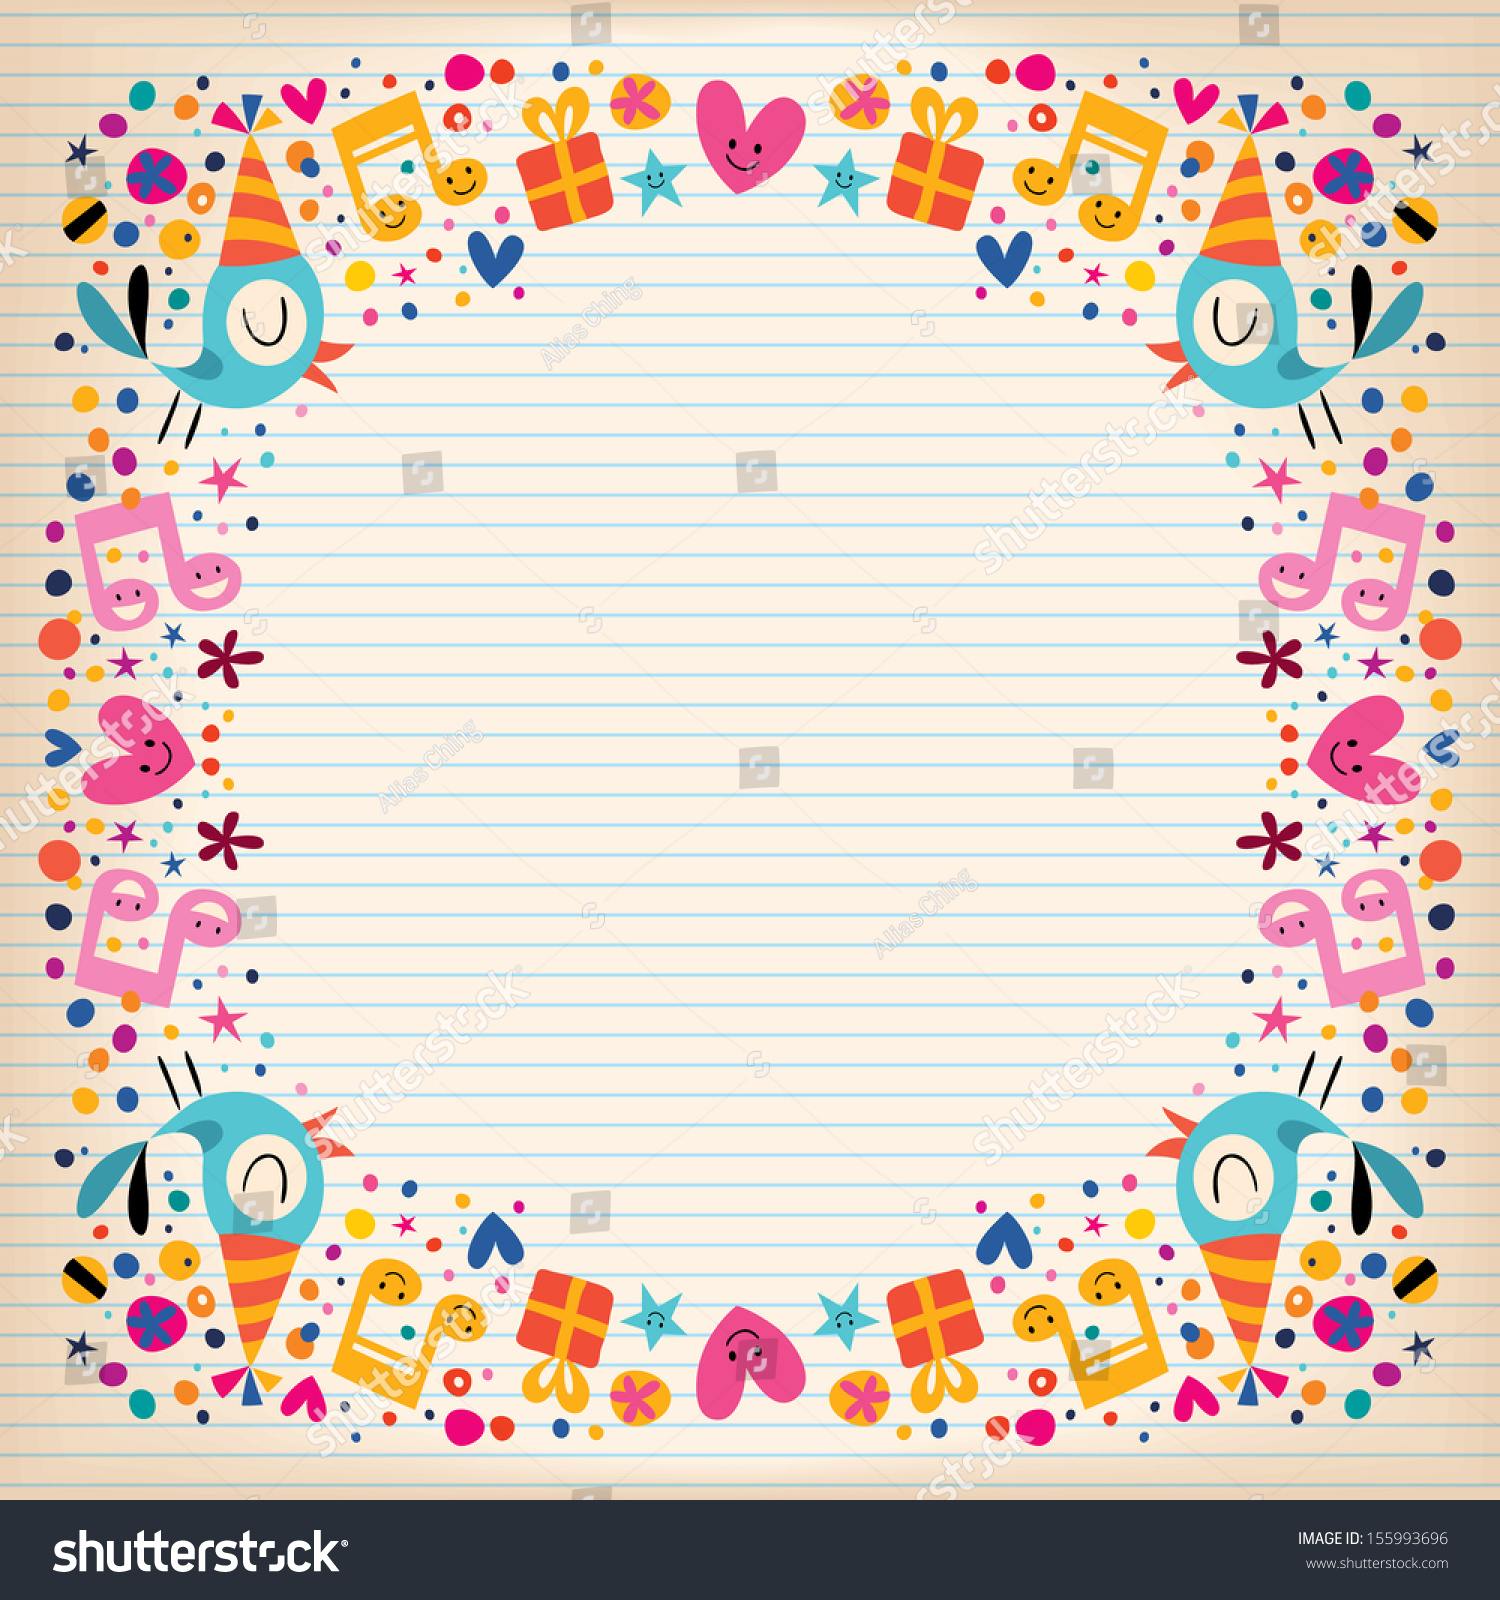 Lined paper with a border